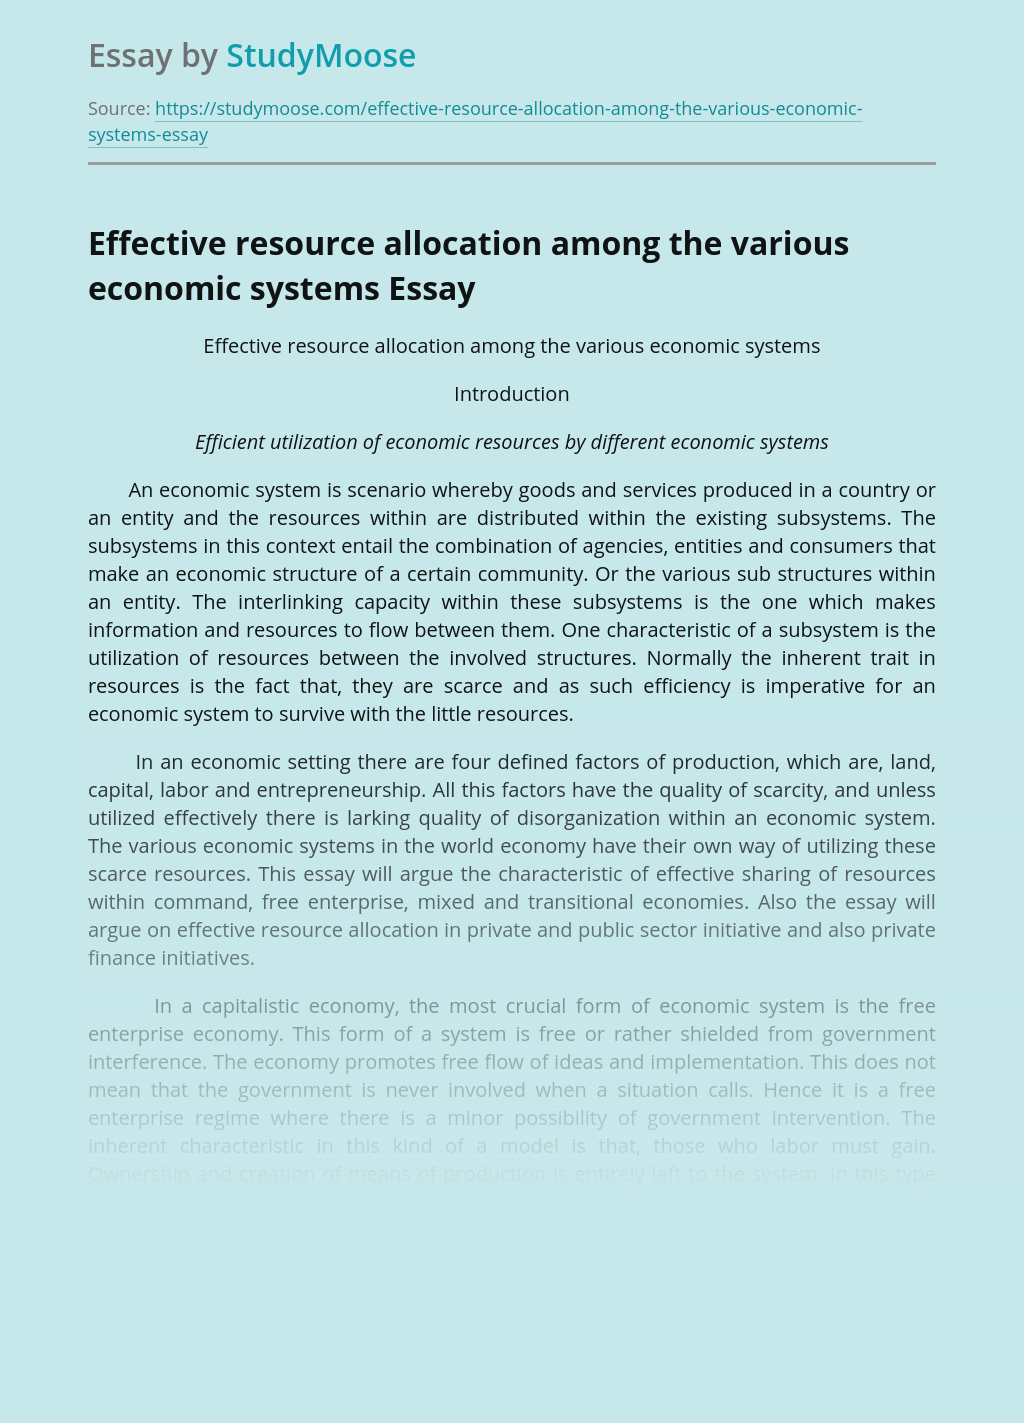 Effective resource allocation among the various economic systems